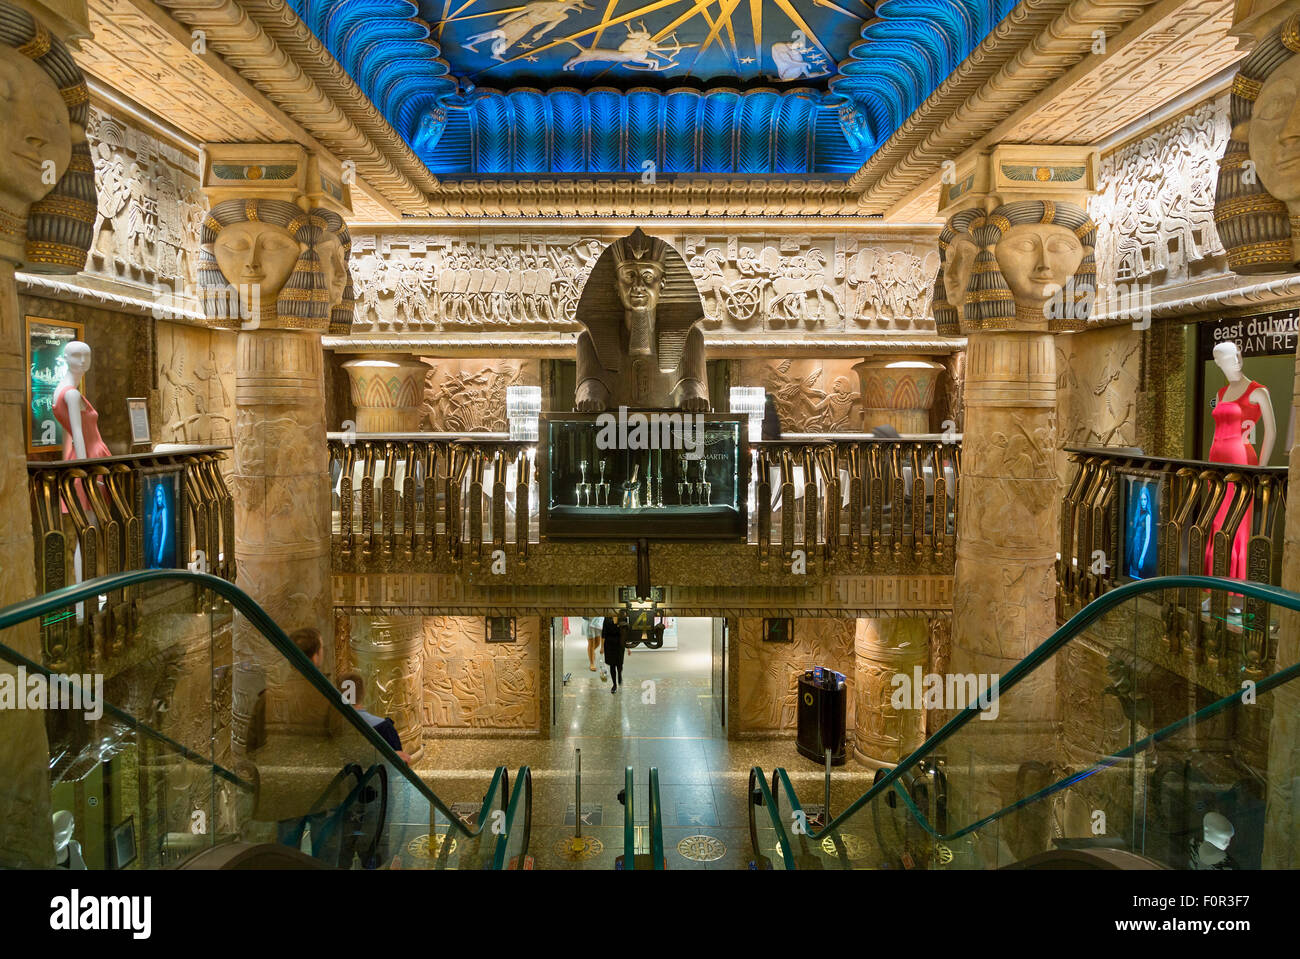 London, Harrods Department store - Stock Image